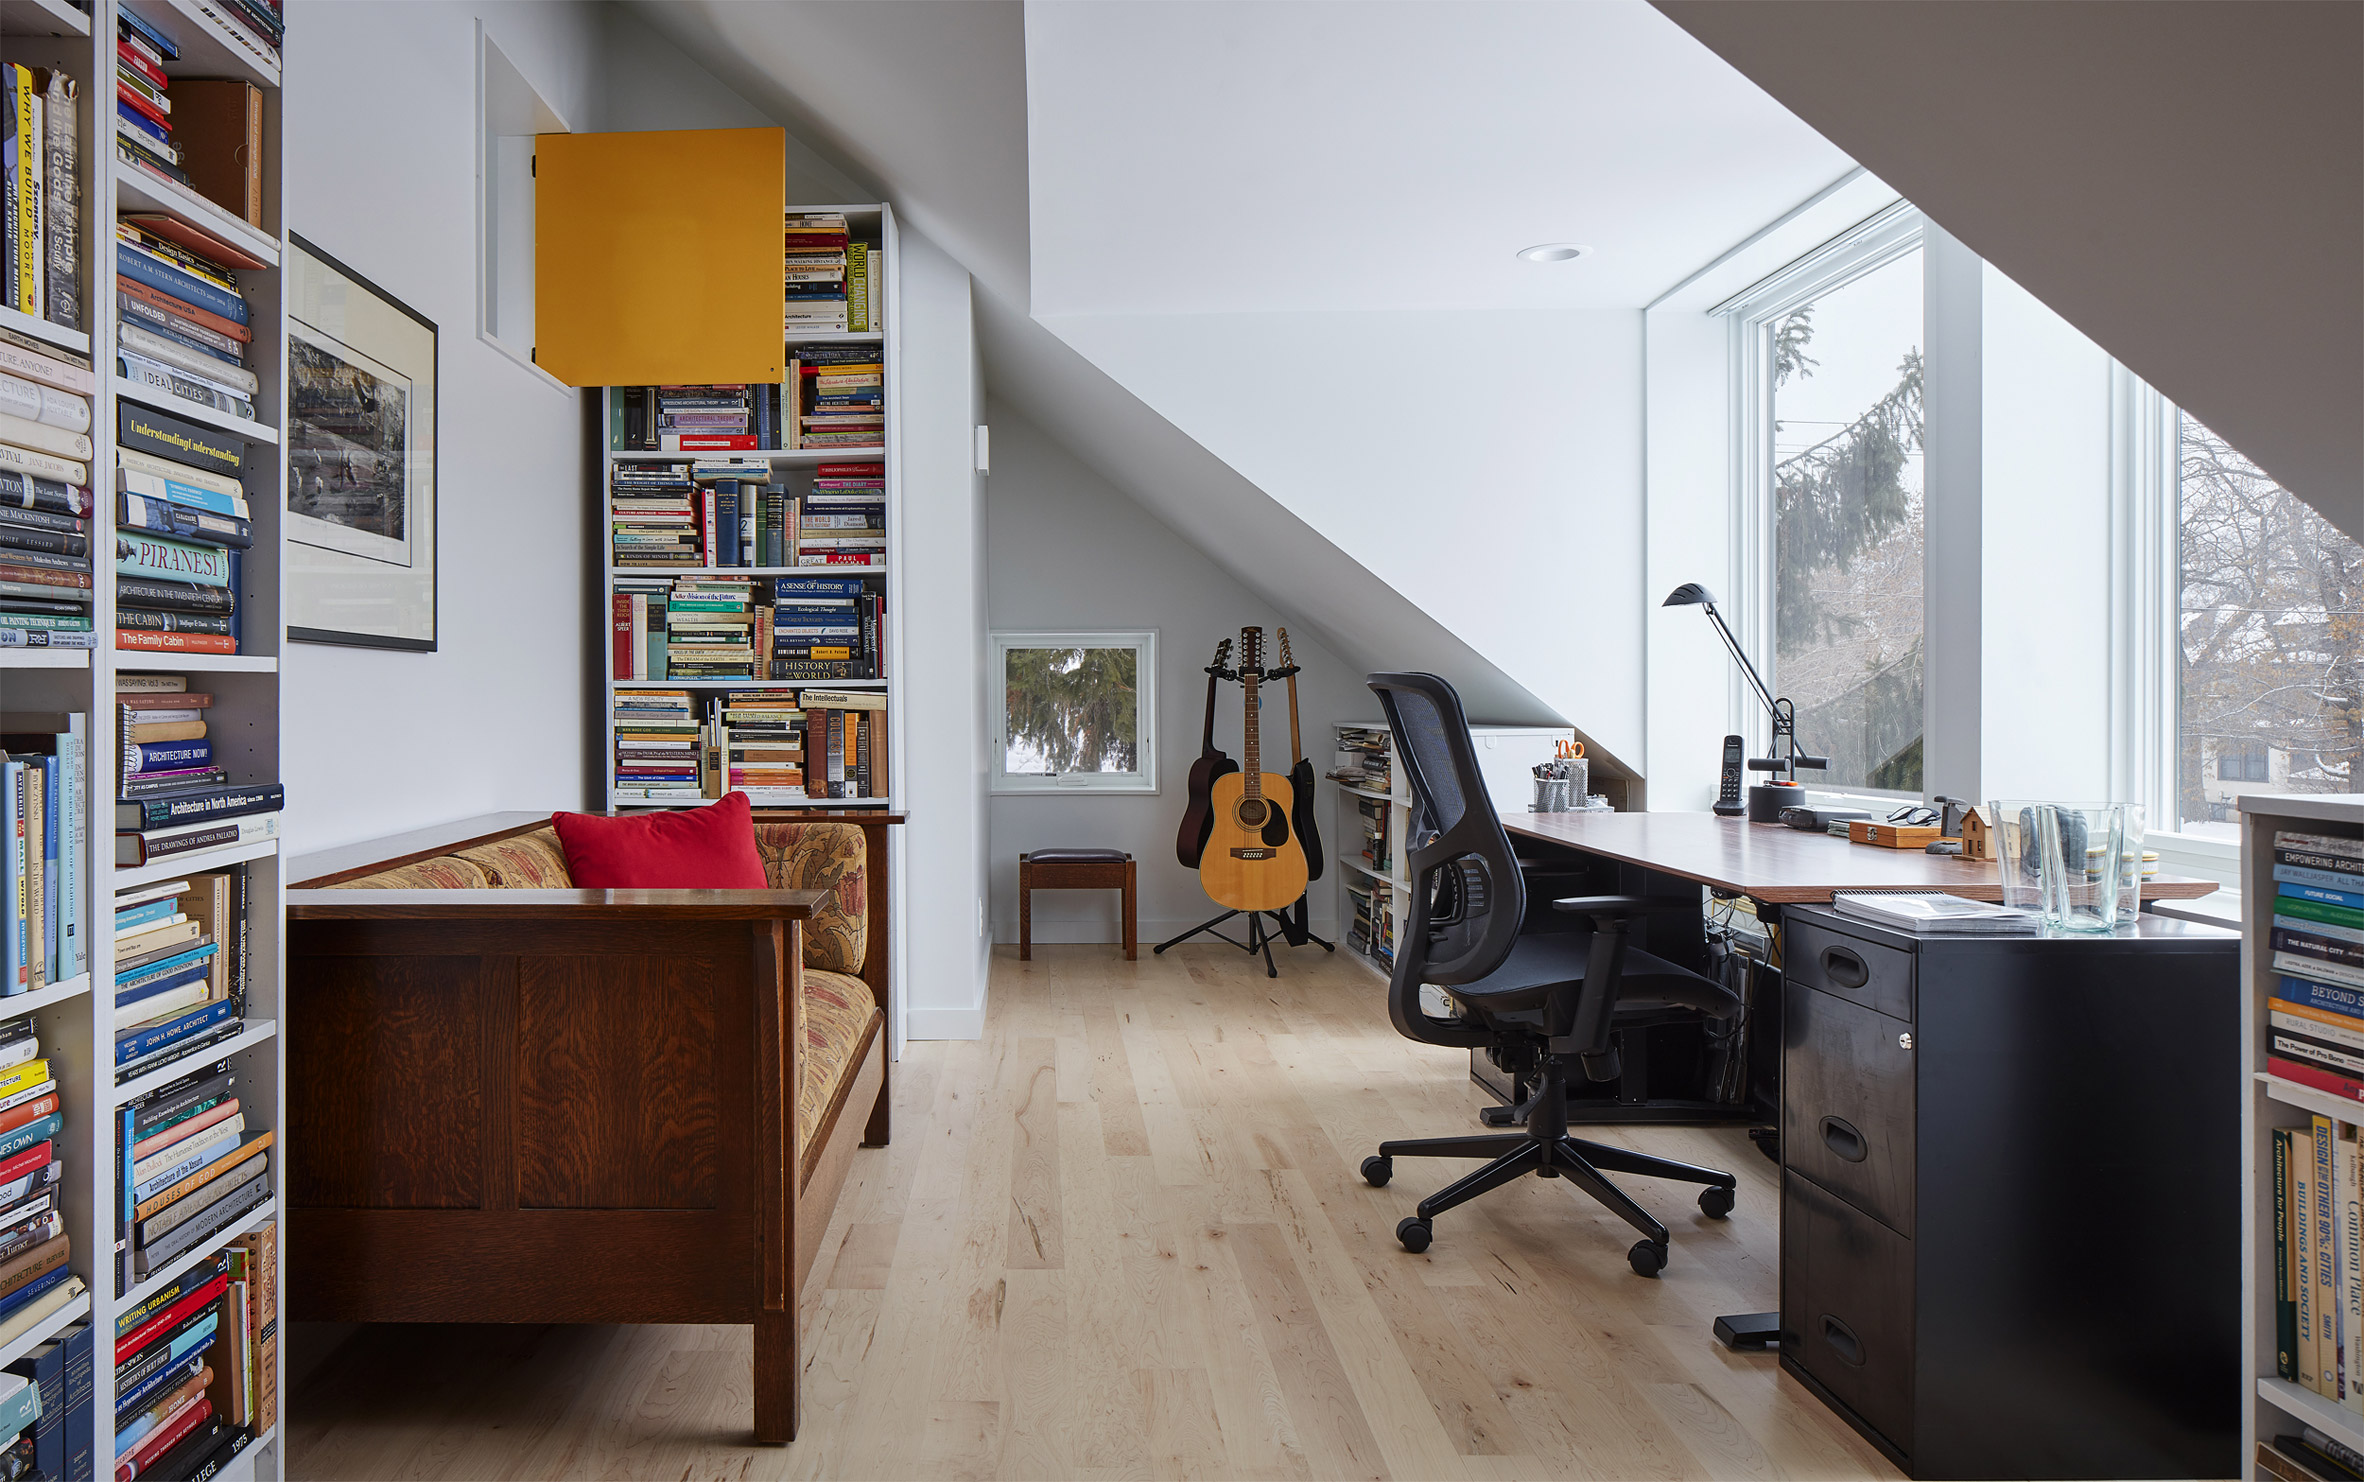 Electric Bungalow has an office